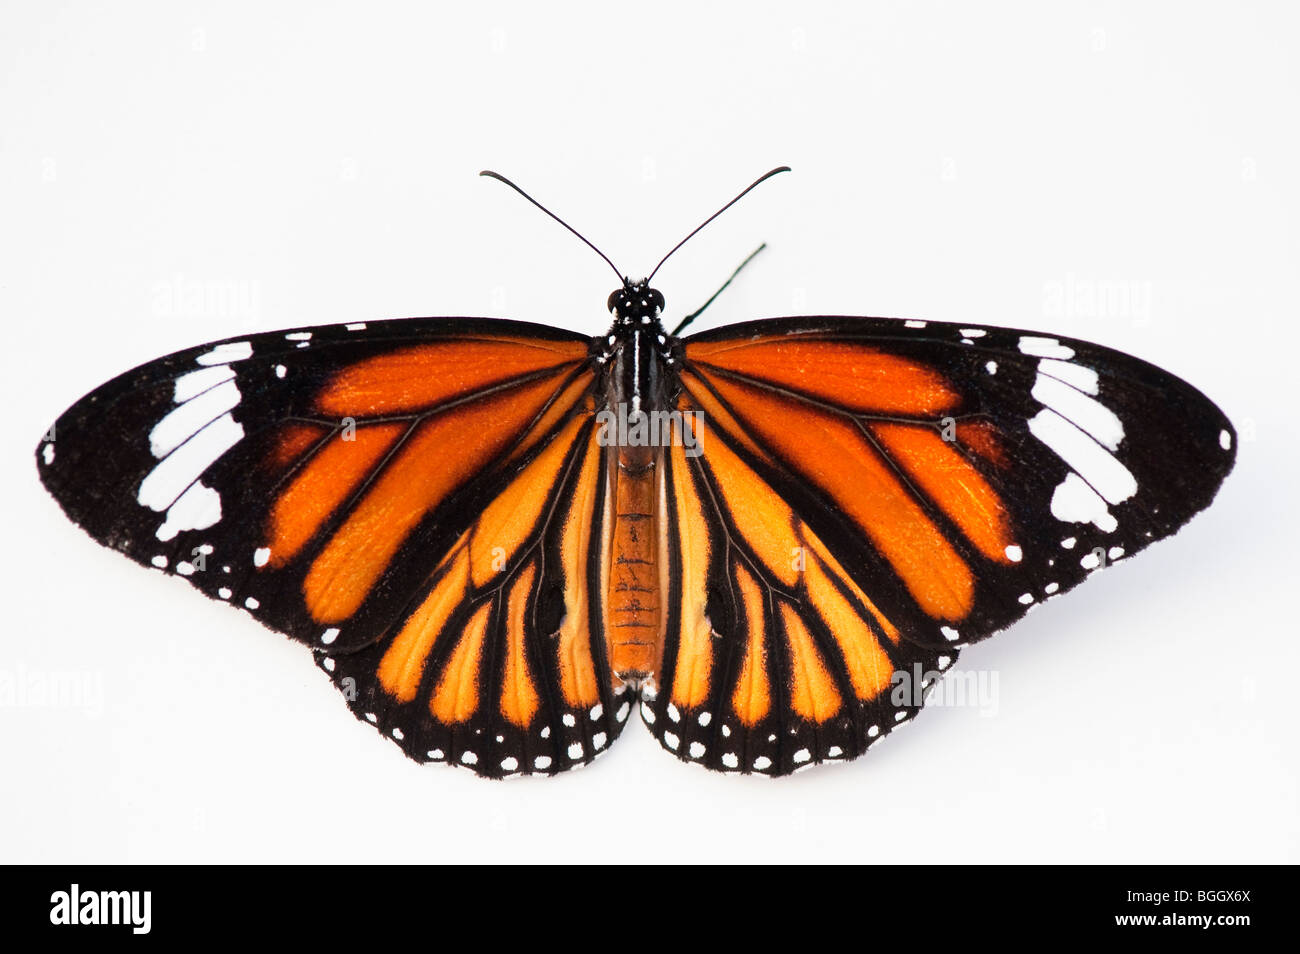 Danaus genutia. Striped tiger butterfly / Common tiger butterfly on a white background. India - Stock Image